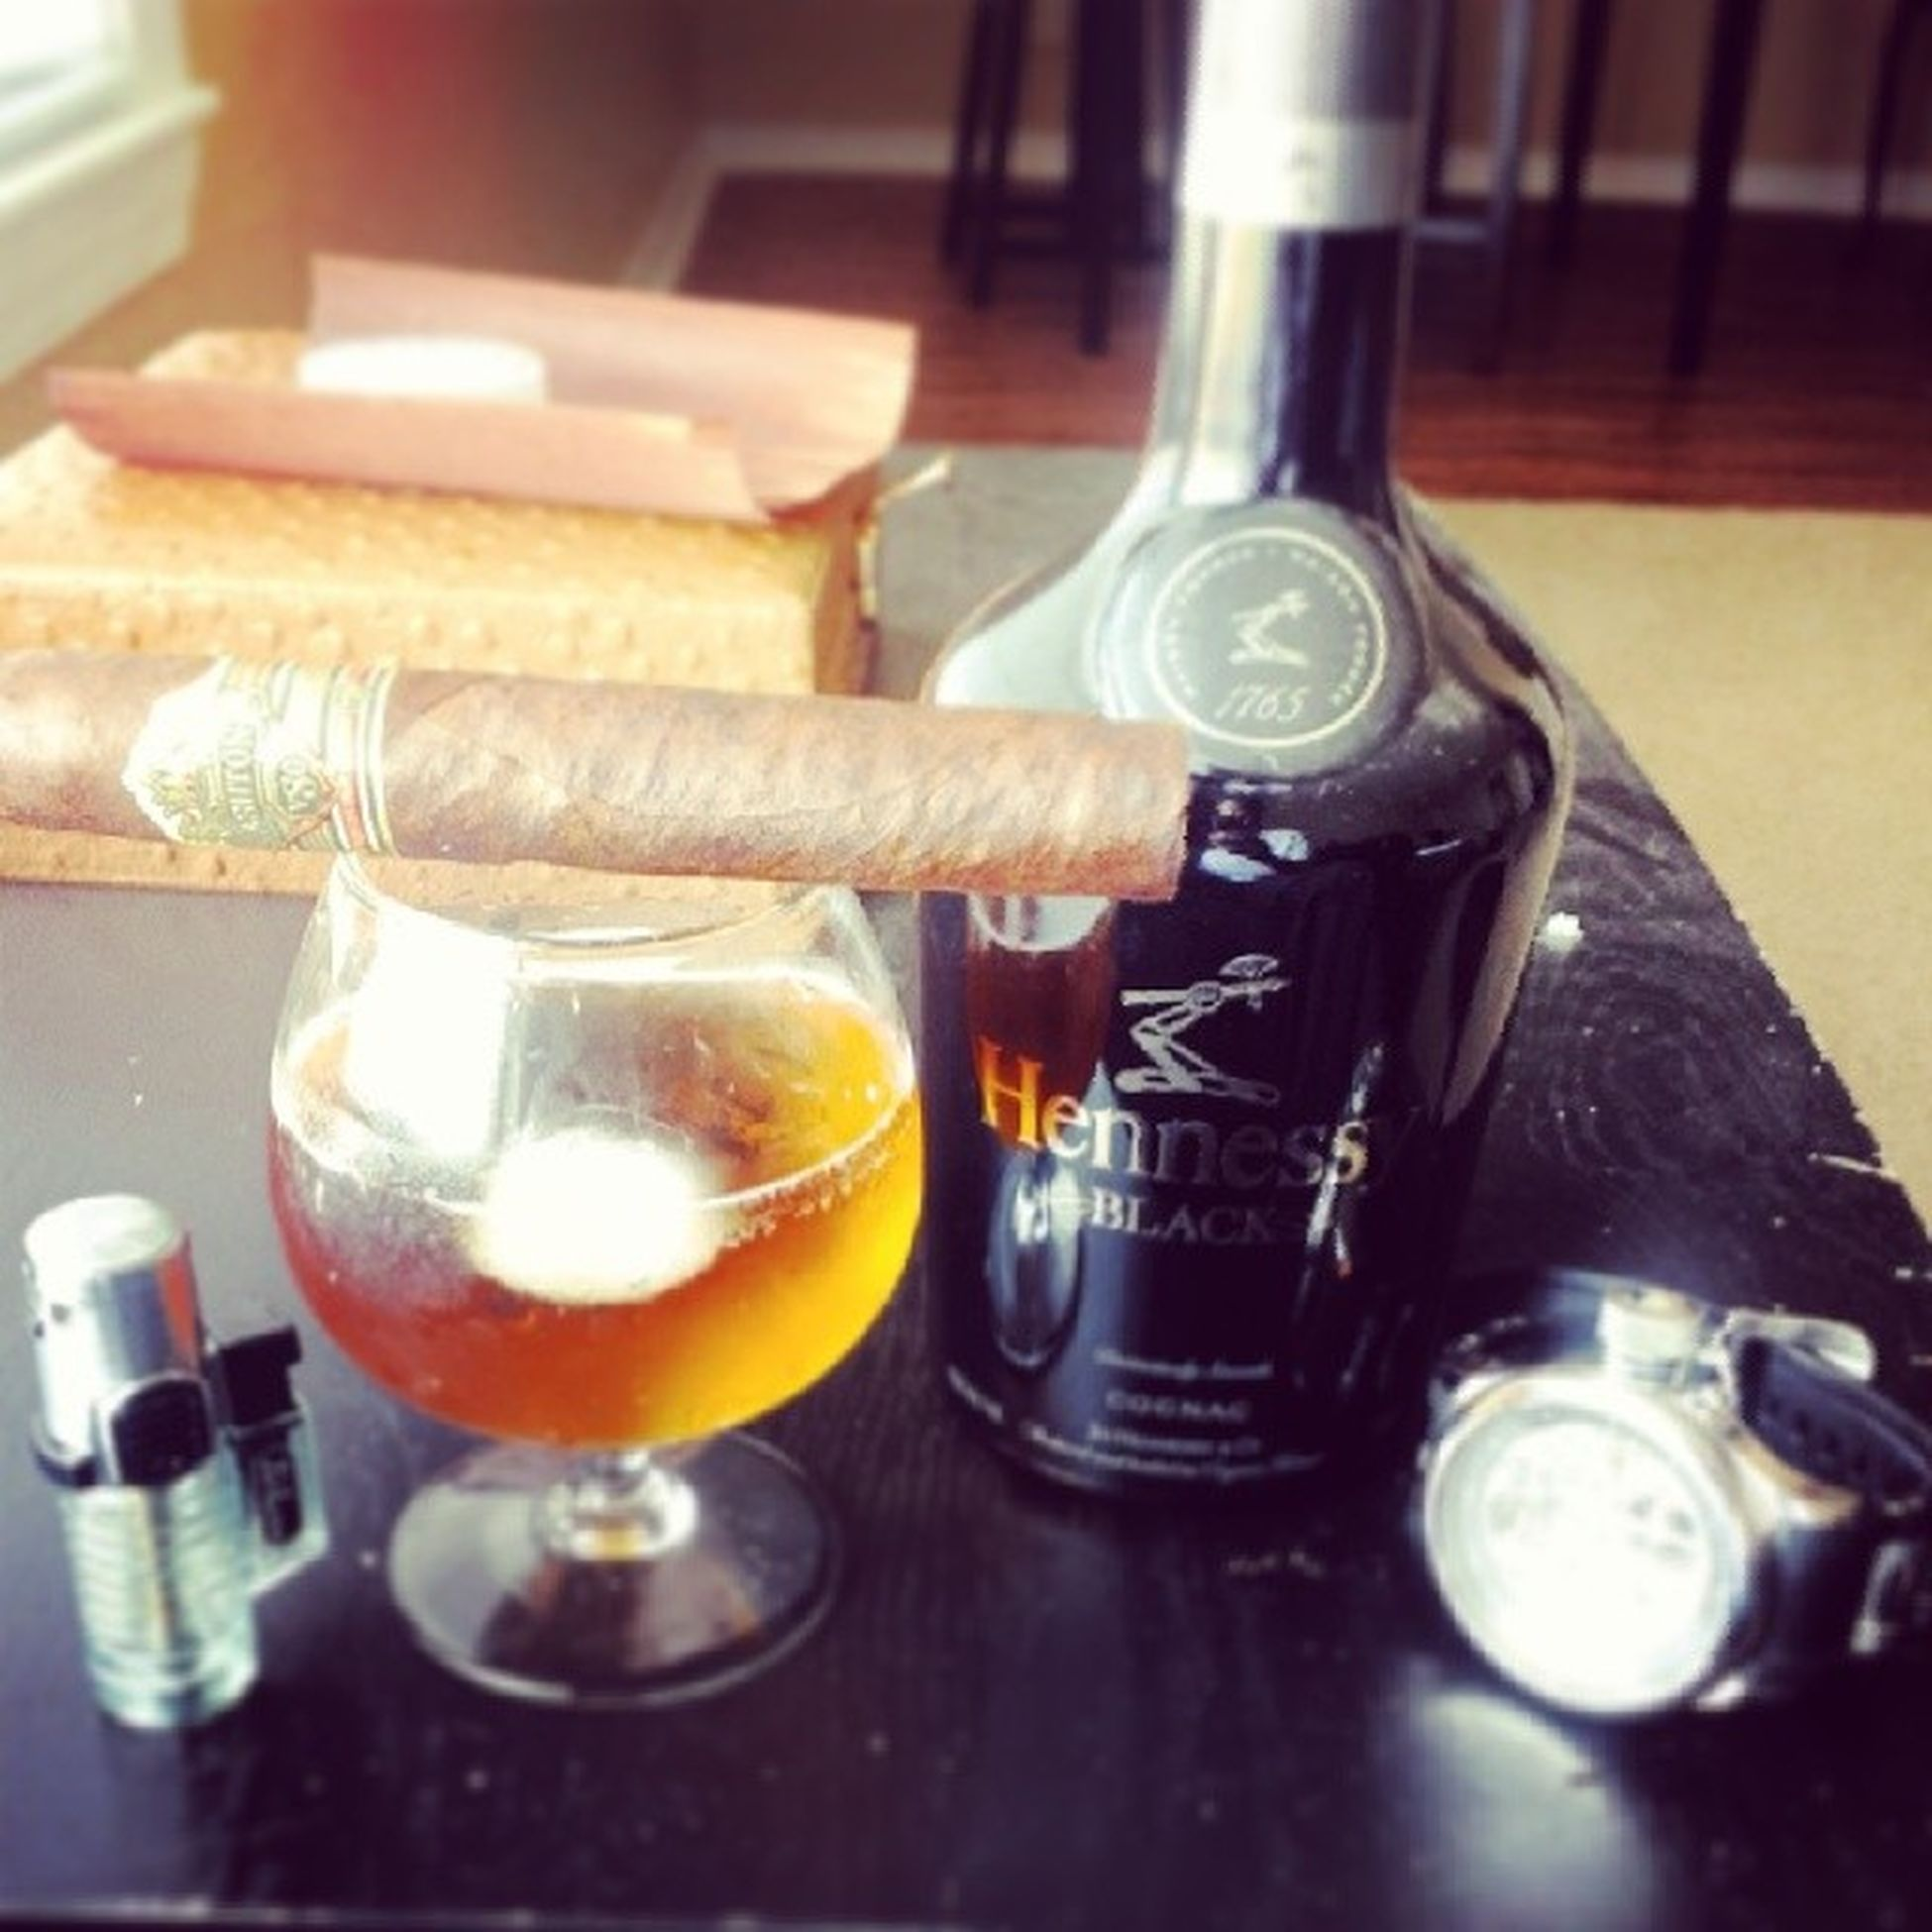 About to chill out for the rest of day Ashton  Henndoggydog Cigarmodel